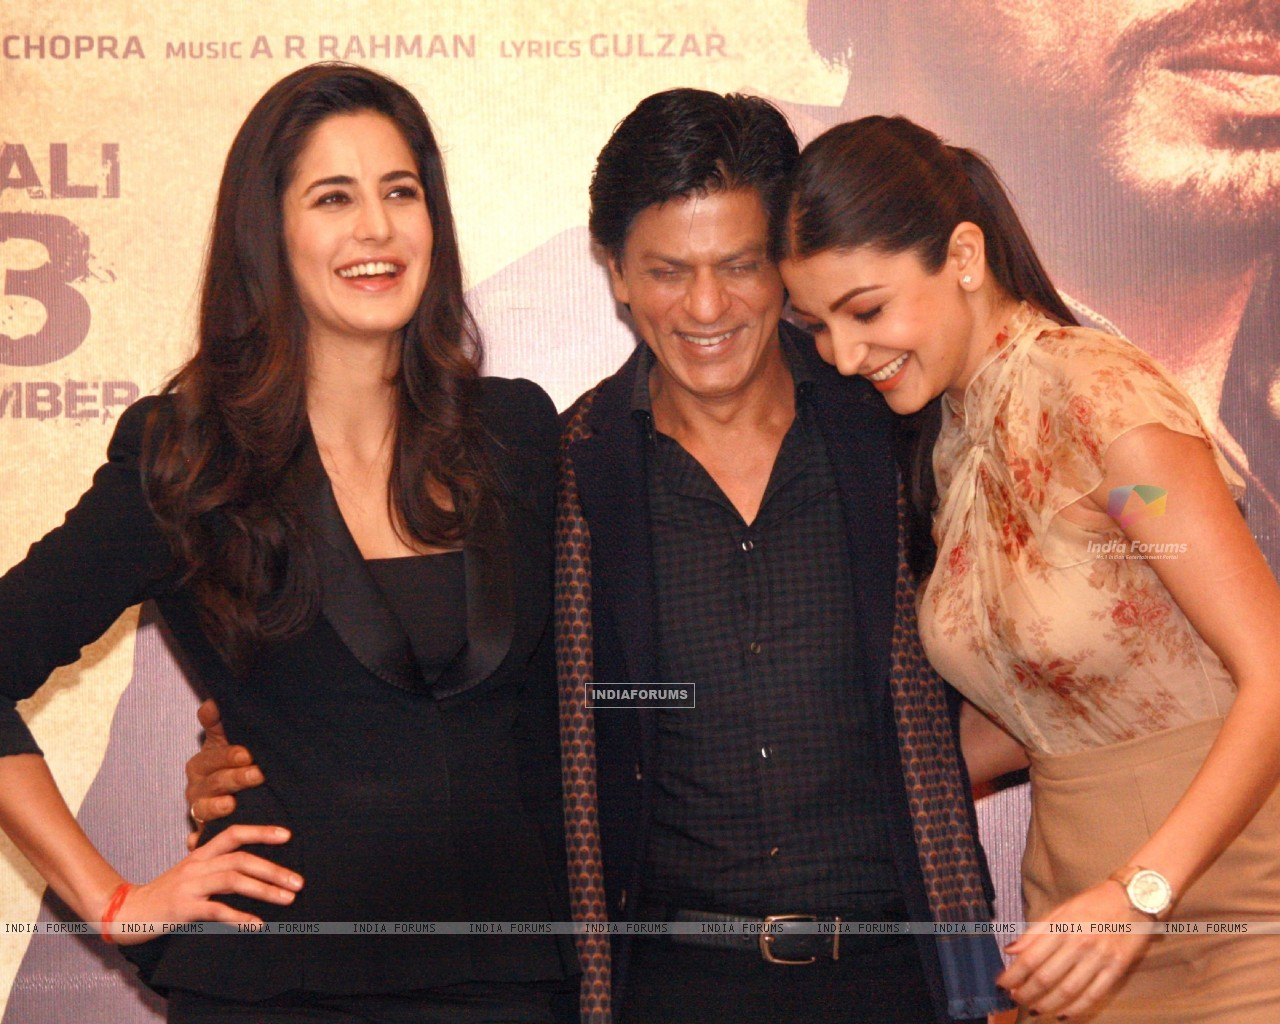 Shahrukh Khan, Katrina Kaif and Anushka Sharma at a press conference for the film Jab Tak Hai Jaan (238948) size:1280x1024